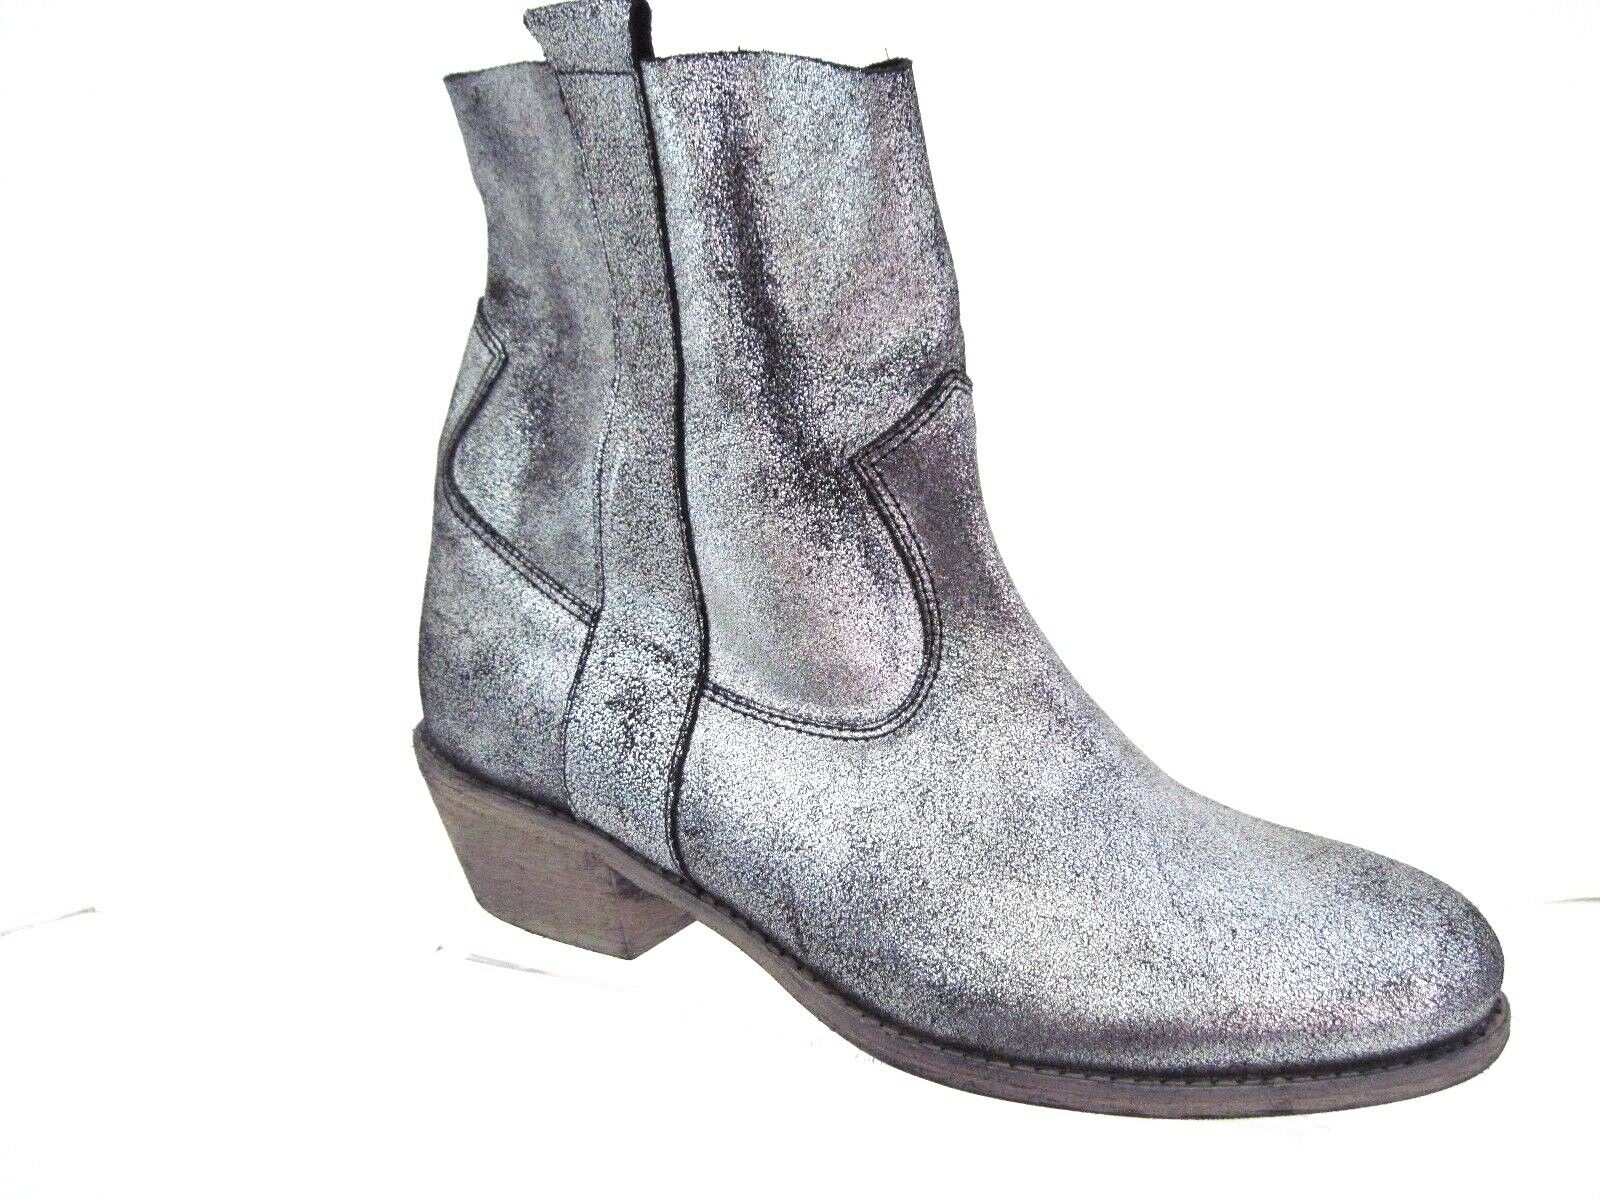 CHARLES DAVID Rare Crackled Silver Leather DAPPER Boots Size 7 Italy